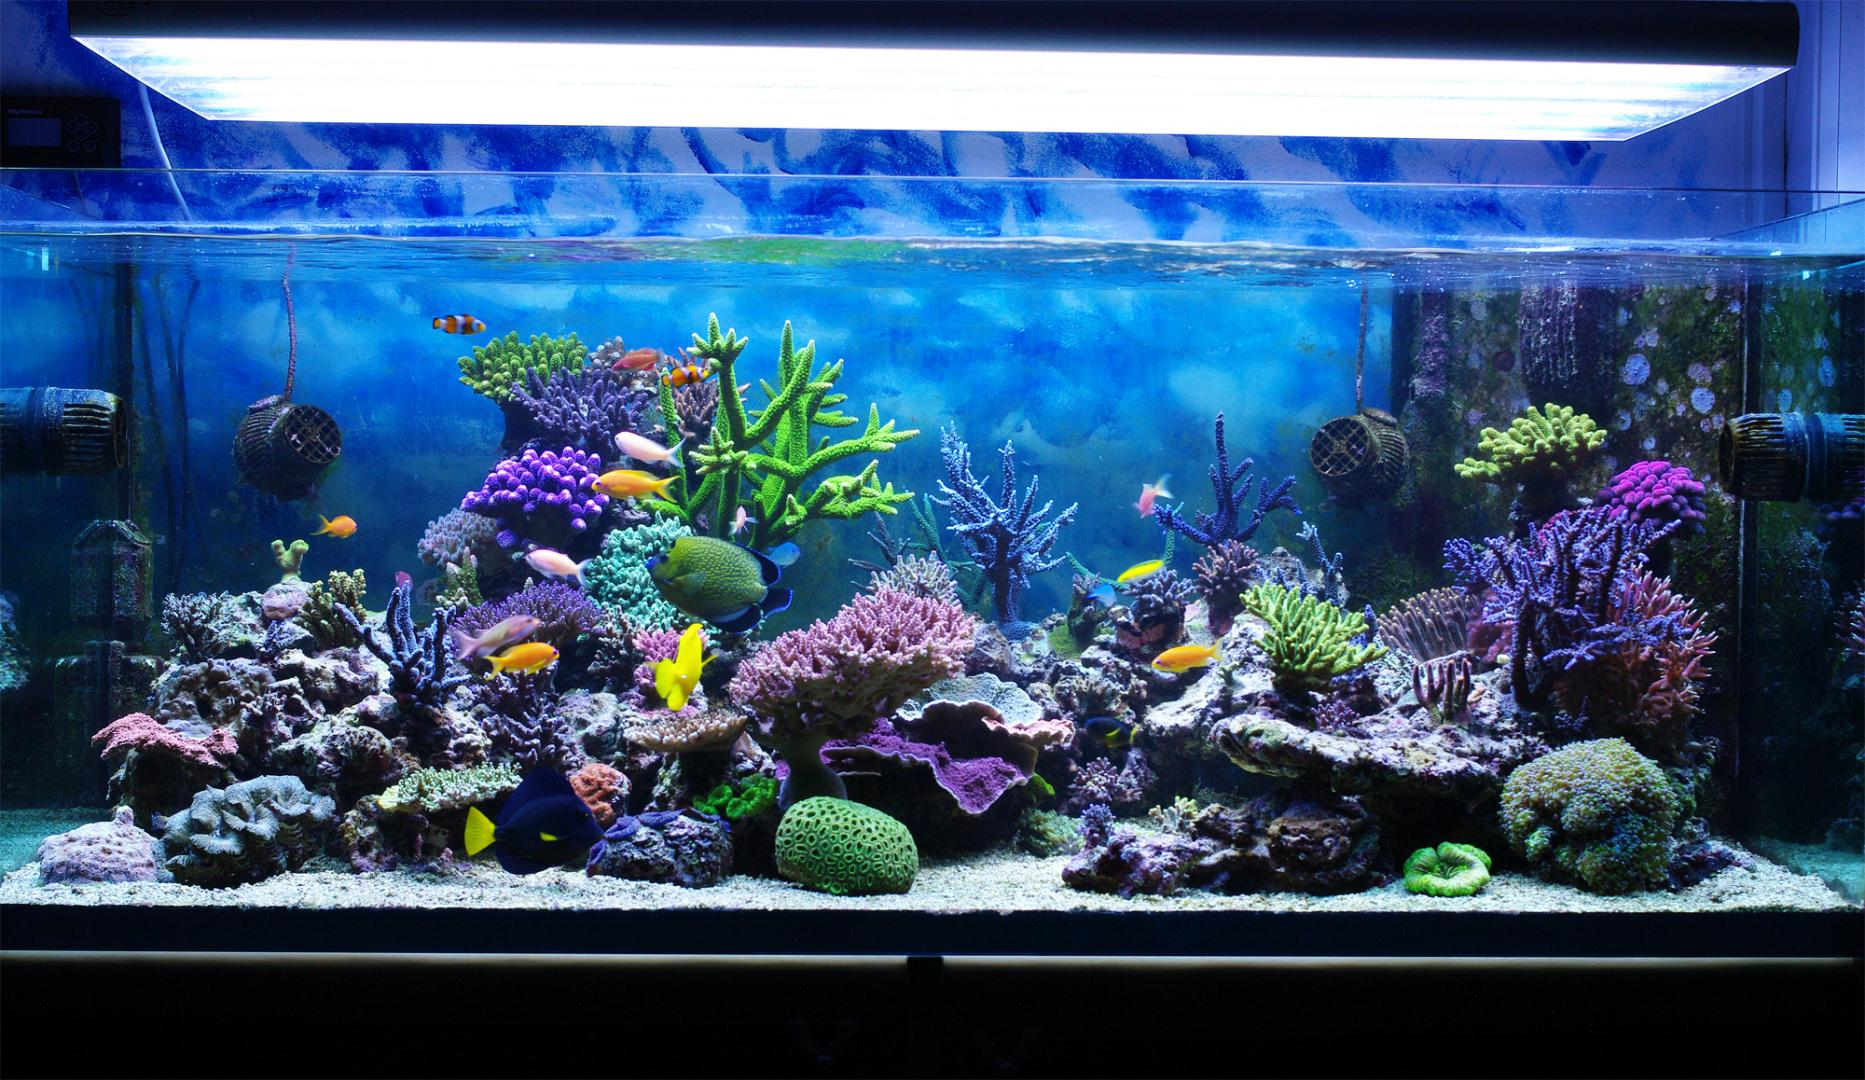 Poissons d aquarium granby saint jean sur richelieu for Vente poisson aquarium particulier